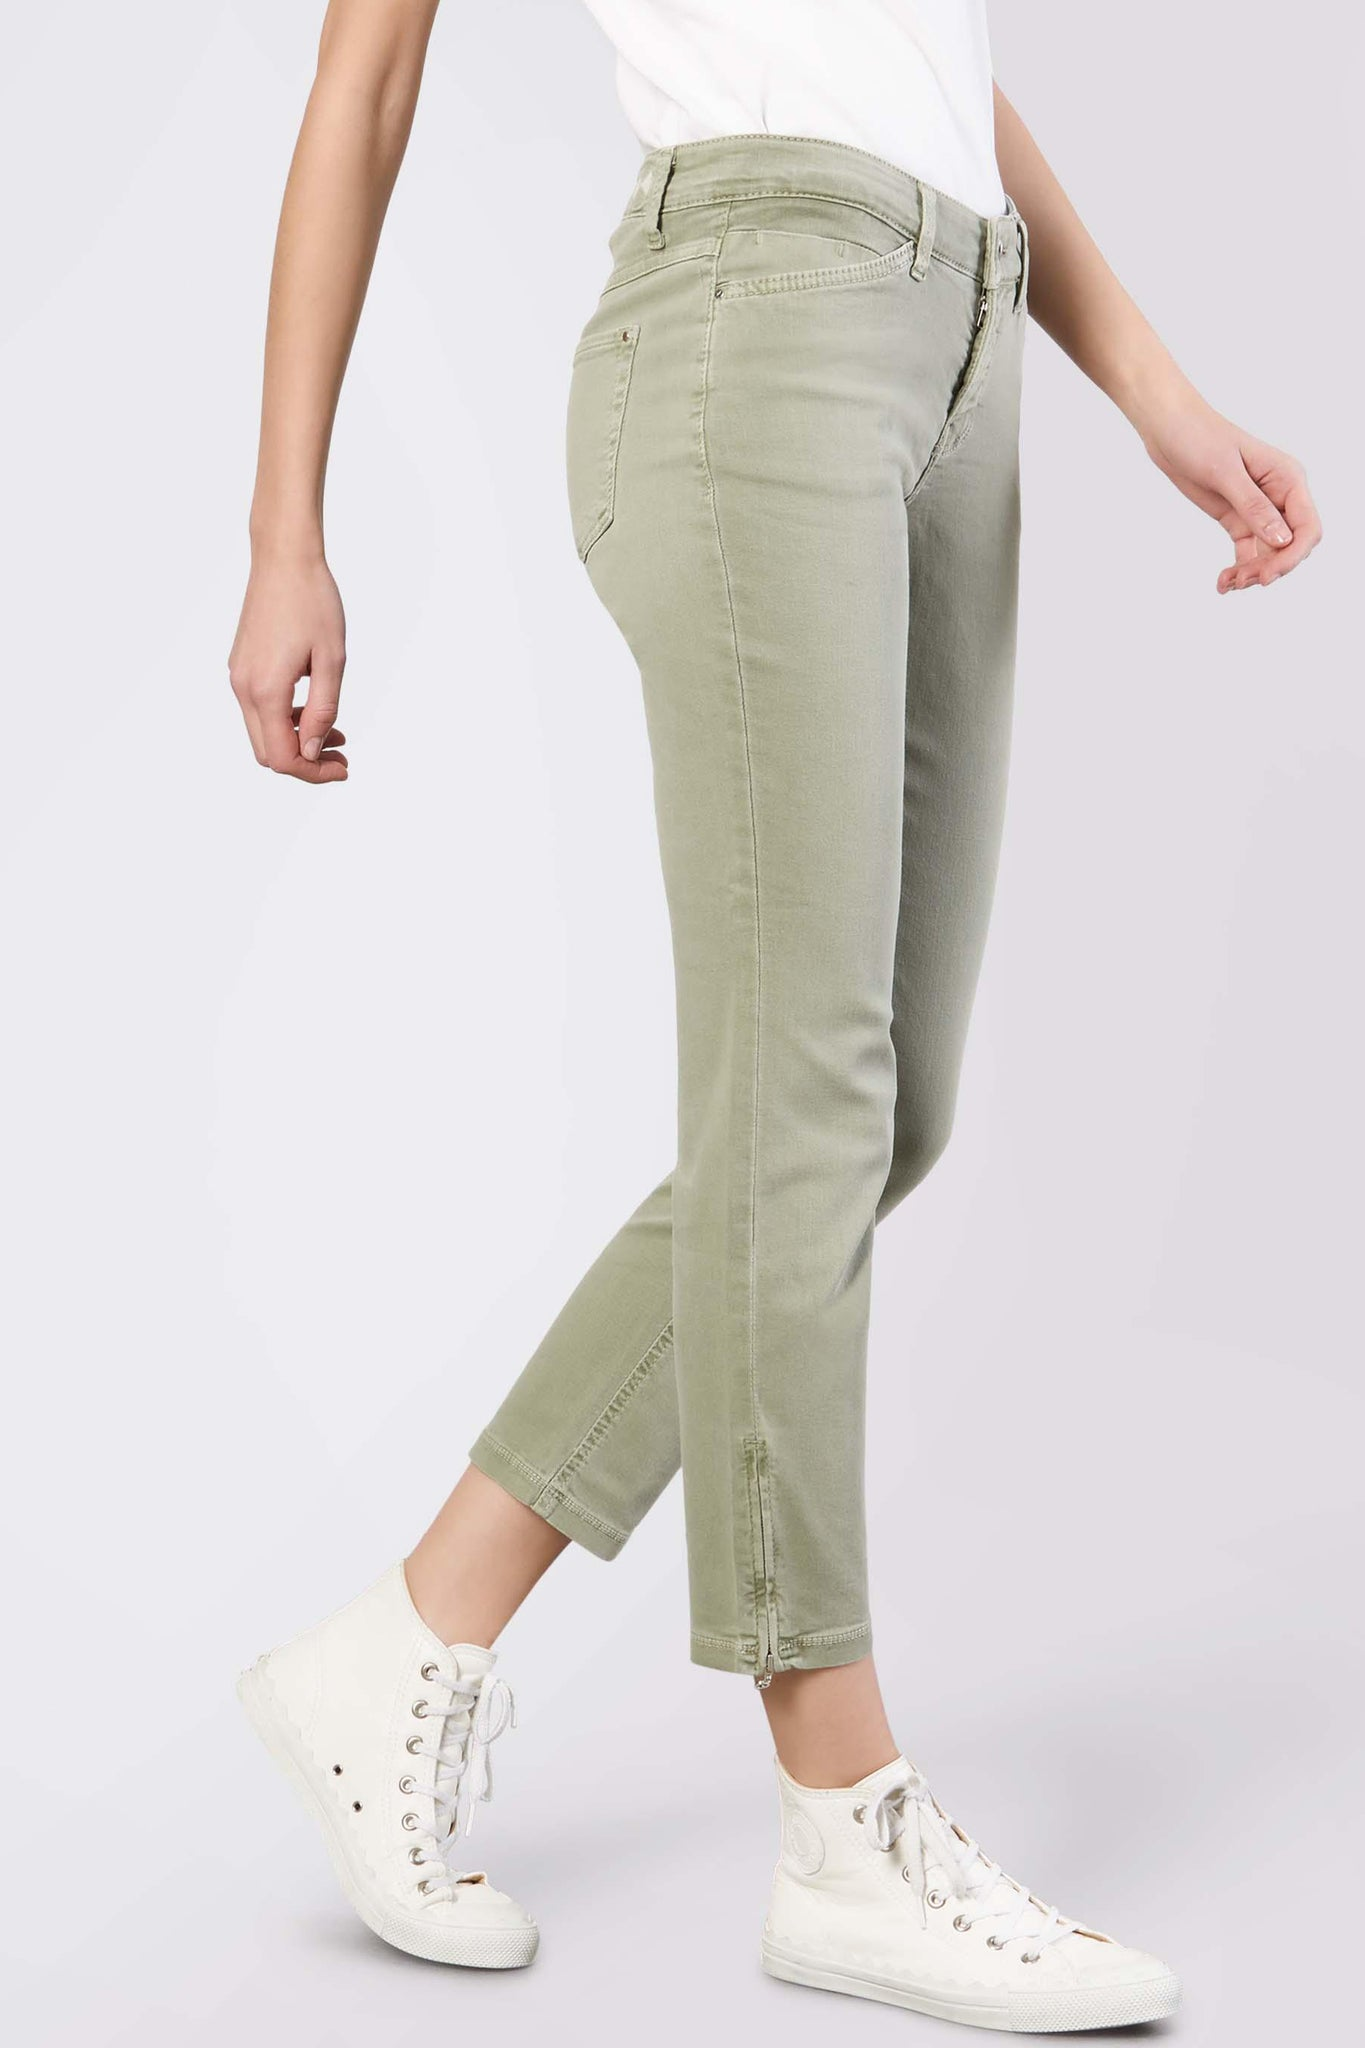 Dream Chic Jeans - Dried Rosemary - NEW ARRIVAL